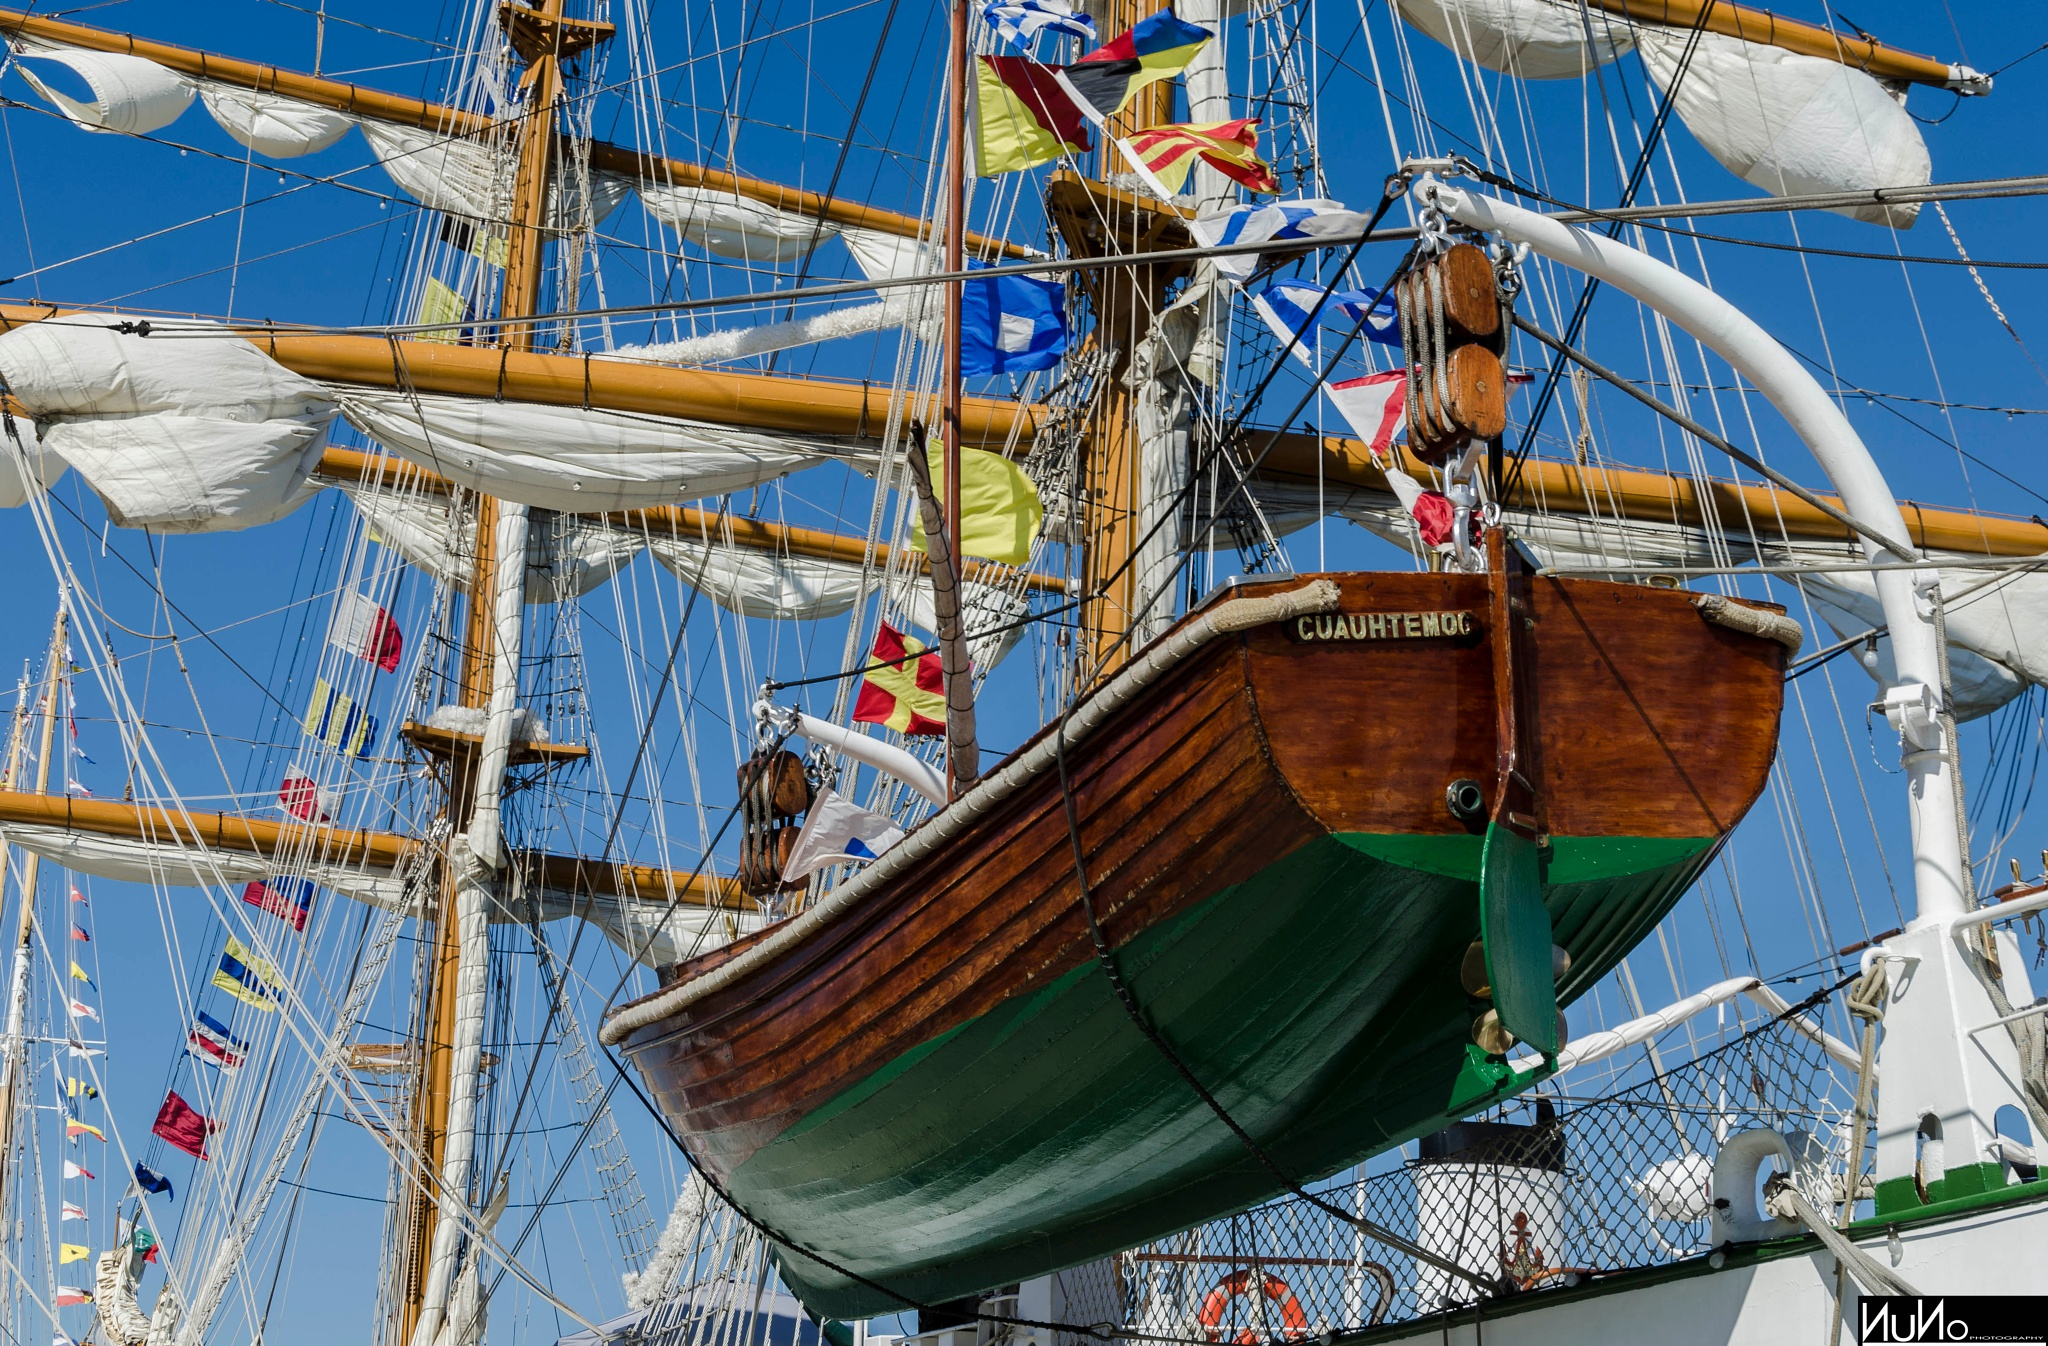 Mexican Ship In Lisbon by Nuno M. S. Martins